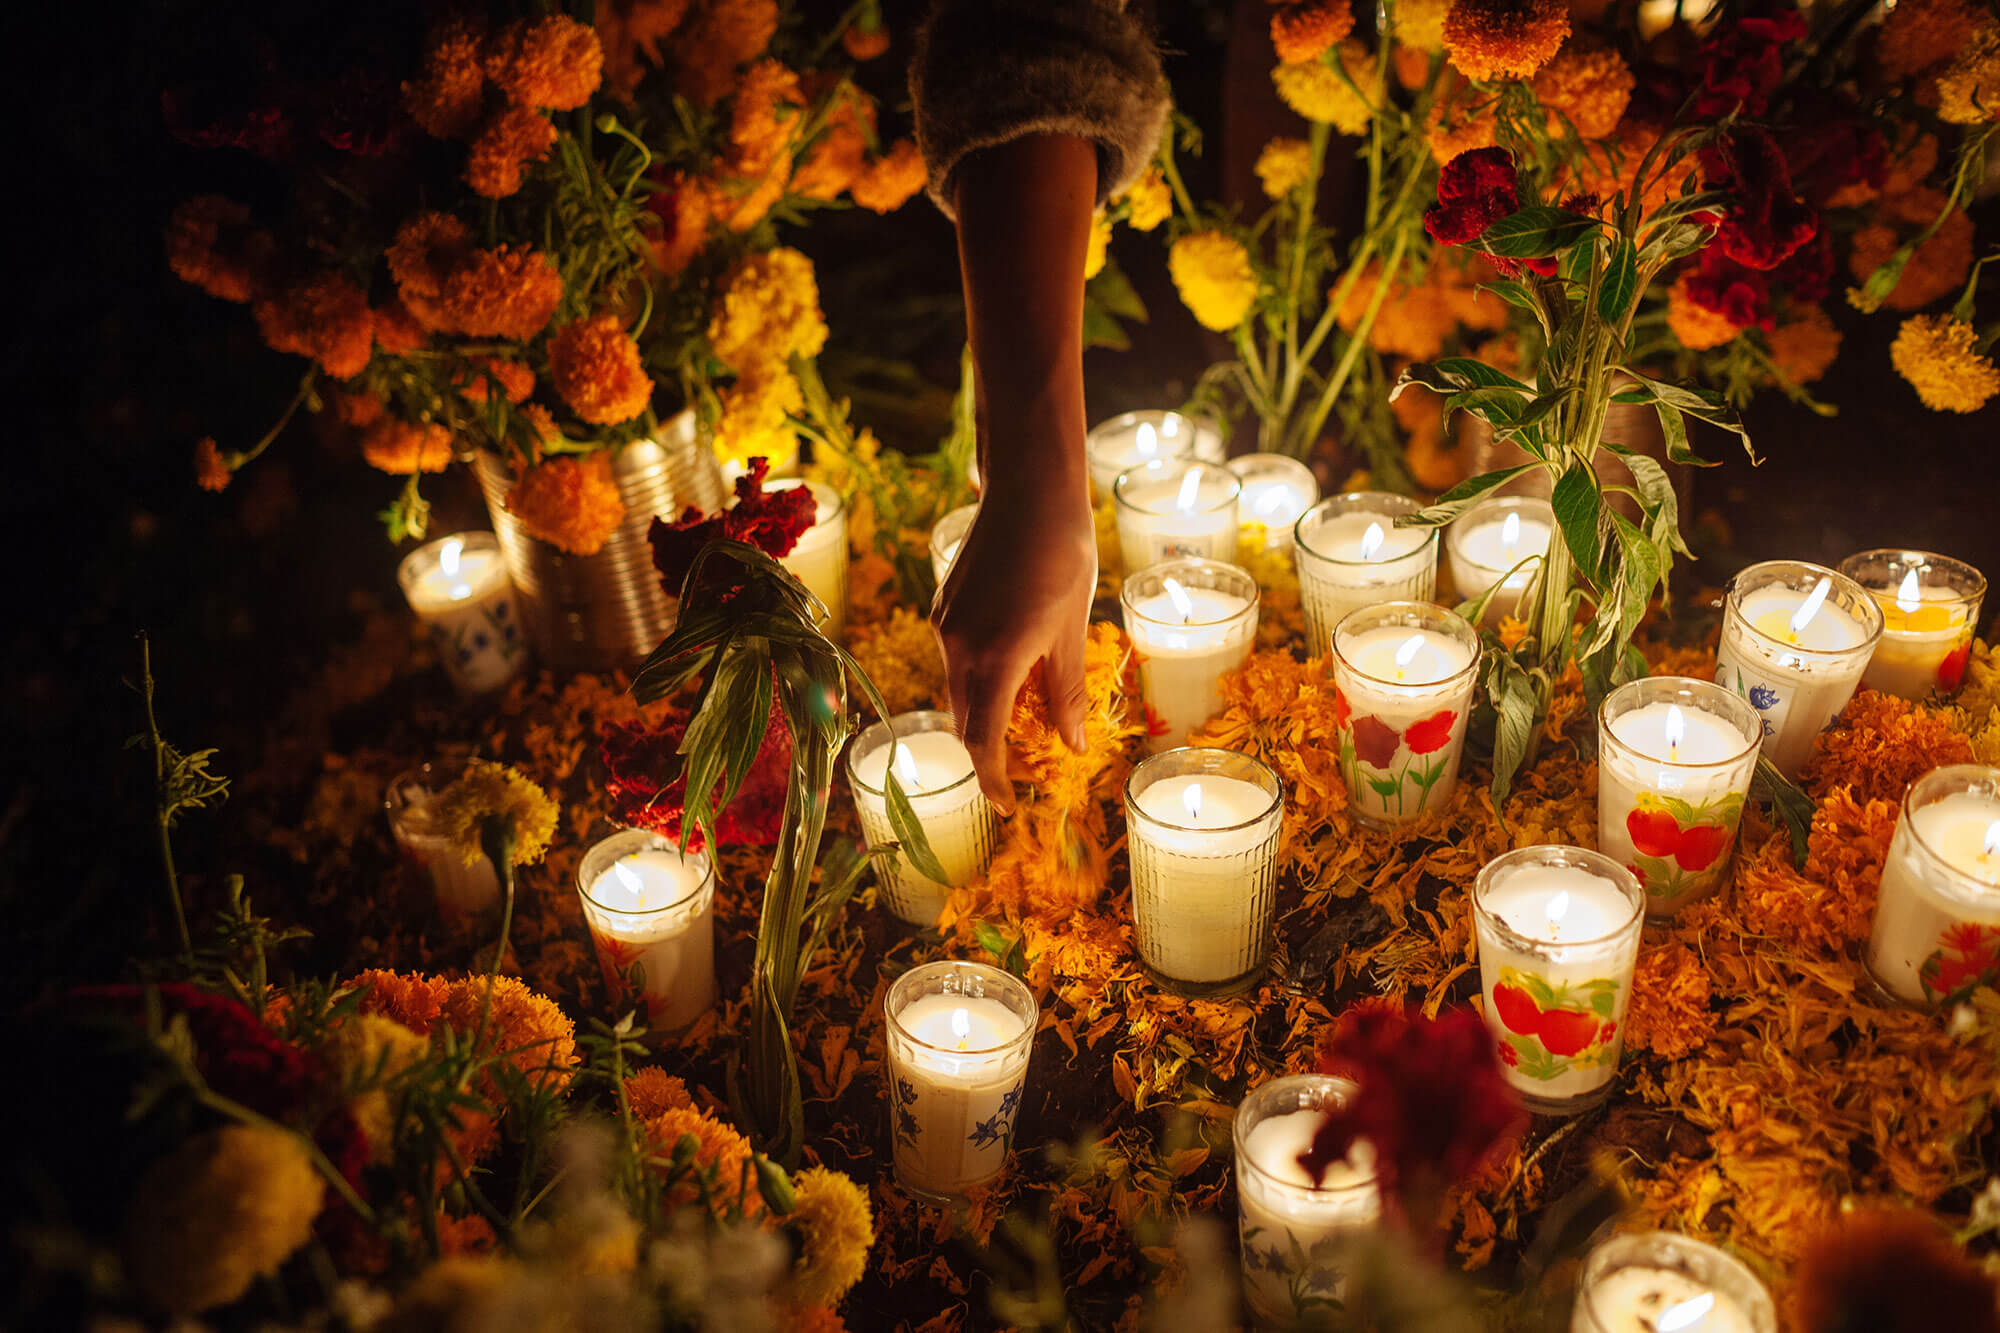 A woman places marigold flower petals in an offering during the Day of the Dead in Tzintzuntzan, Mexico A woman places flower petals in an offering during the Day of the Dead in Mexico.